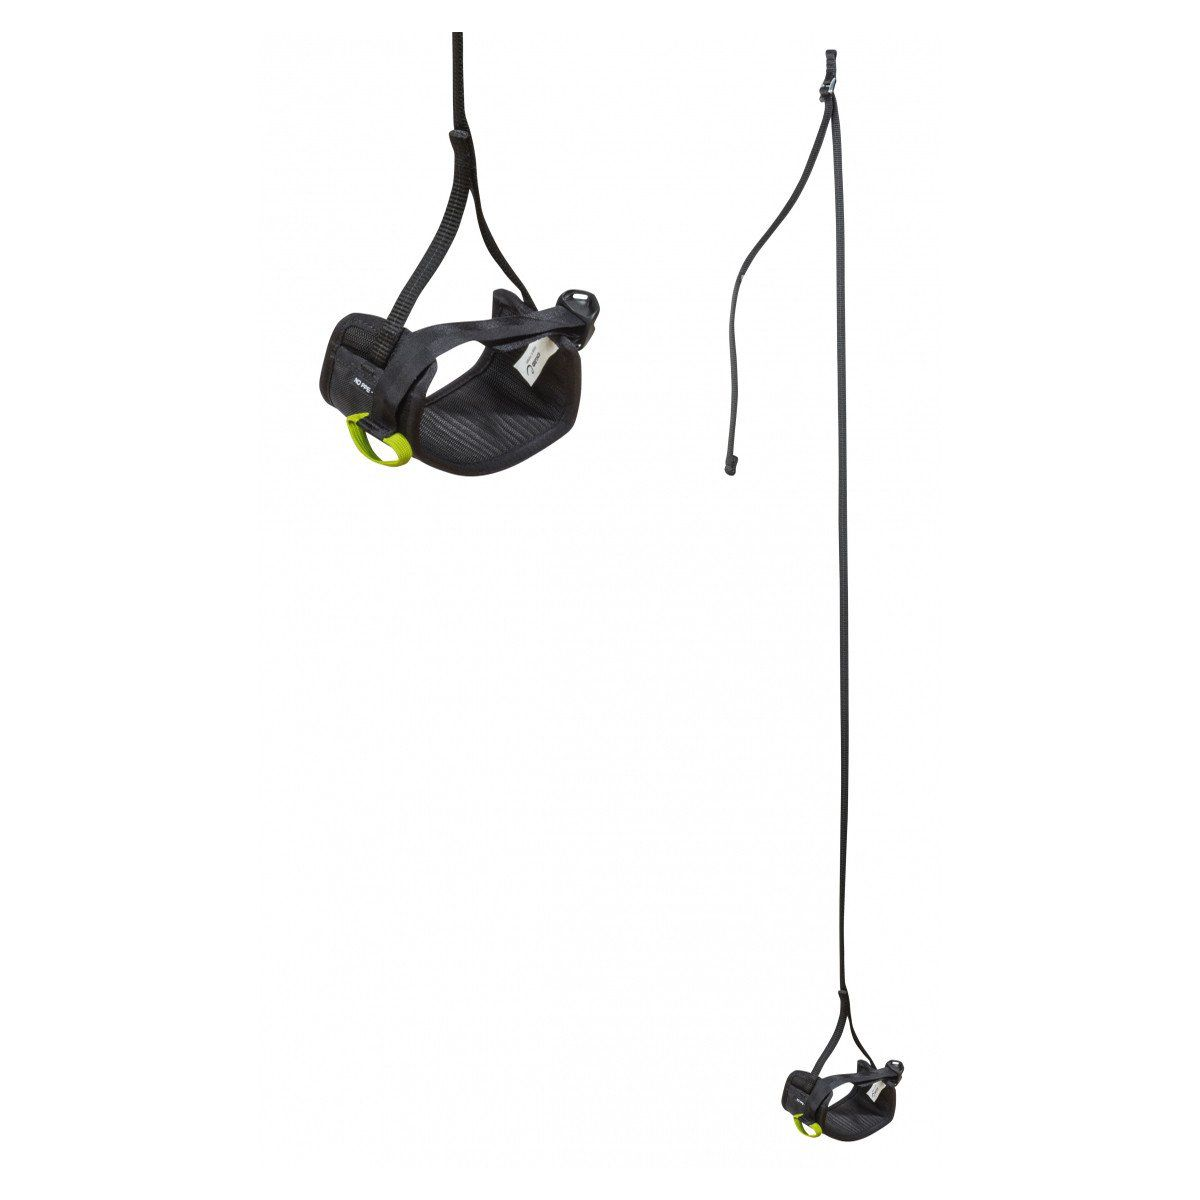 Edelrid Prostep - Estribo regulable